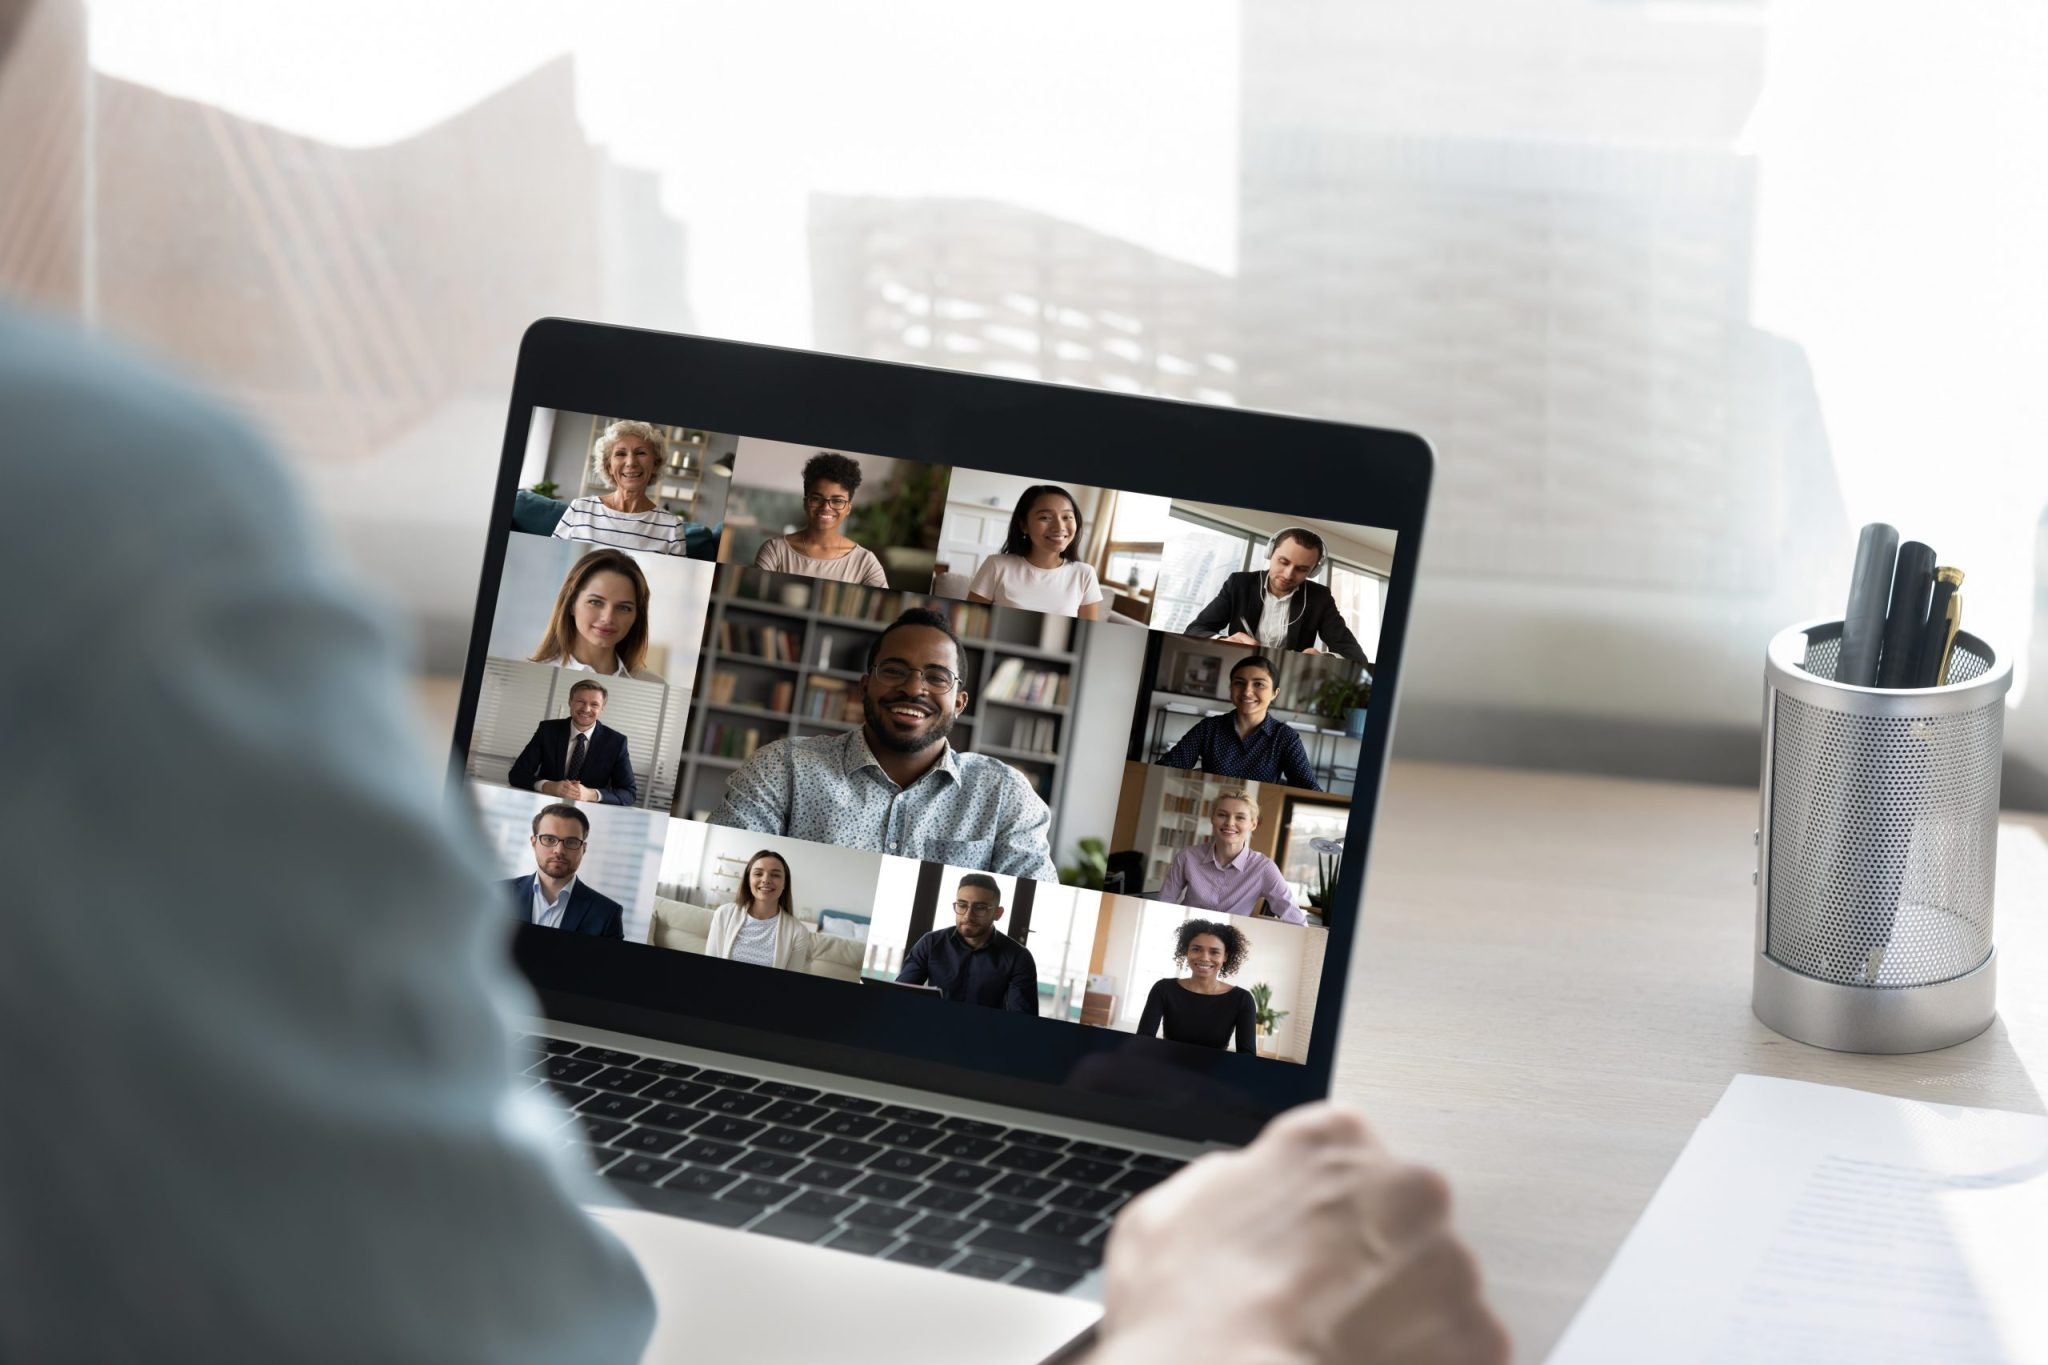 Atlassian tools help with remote team management